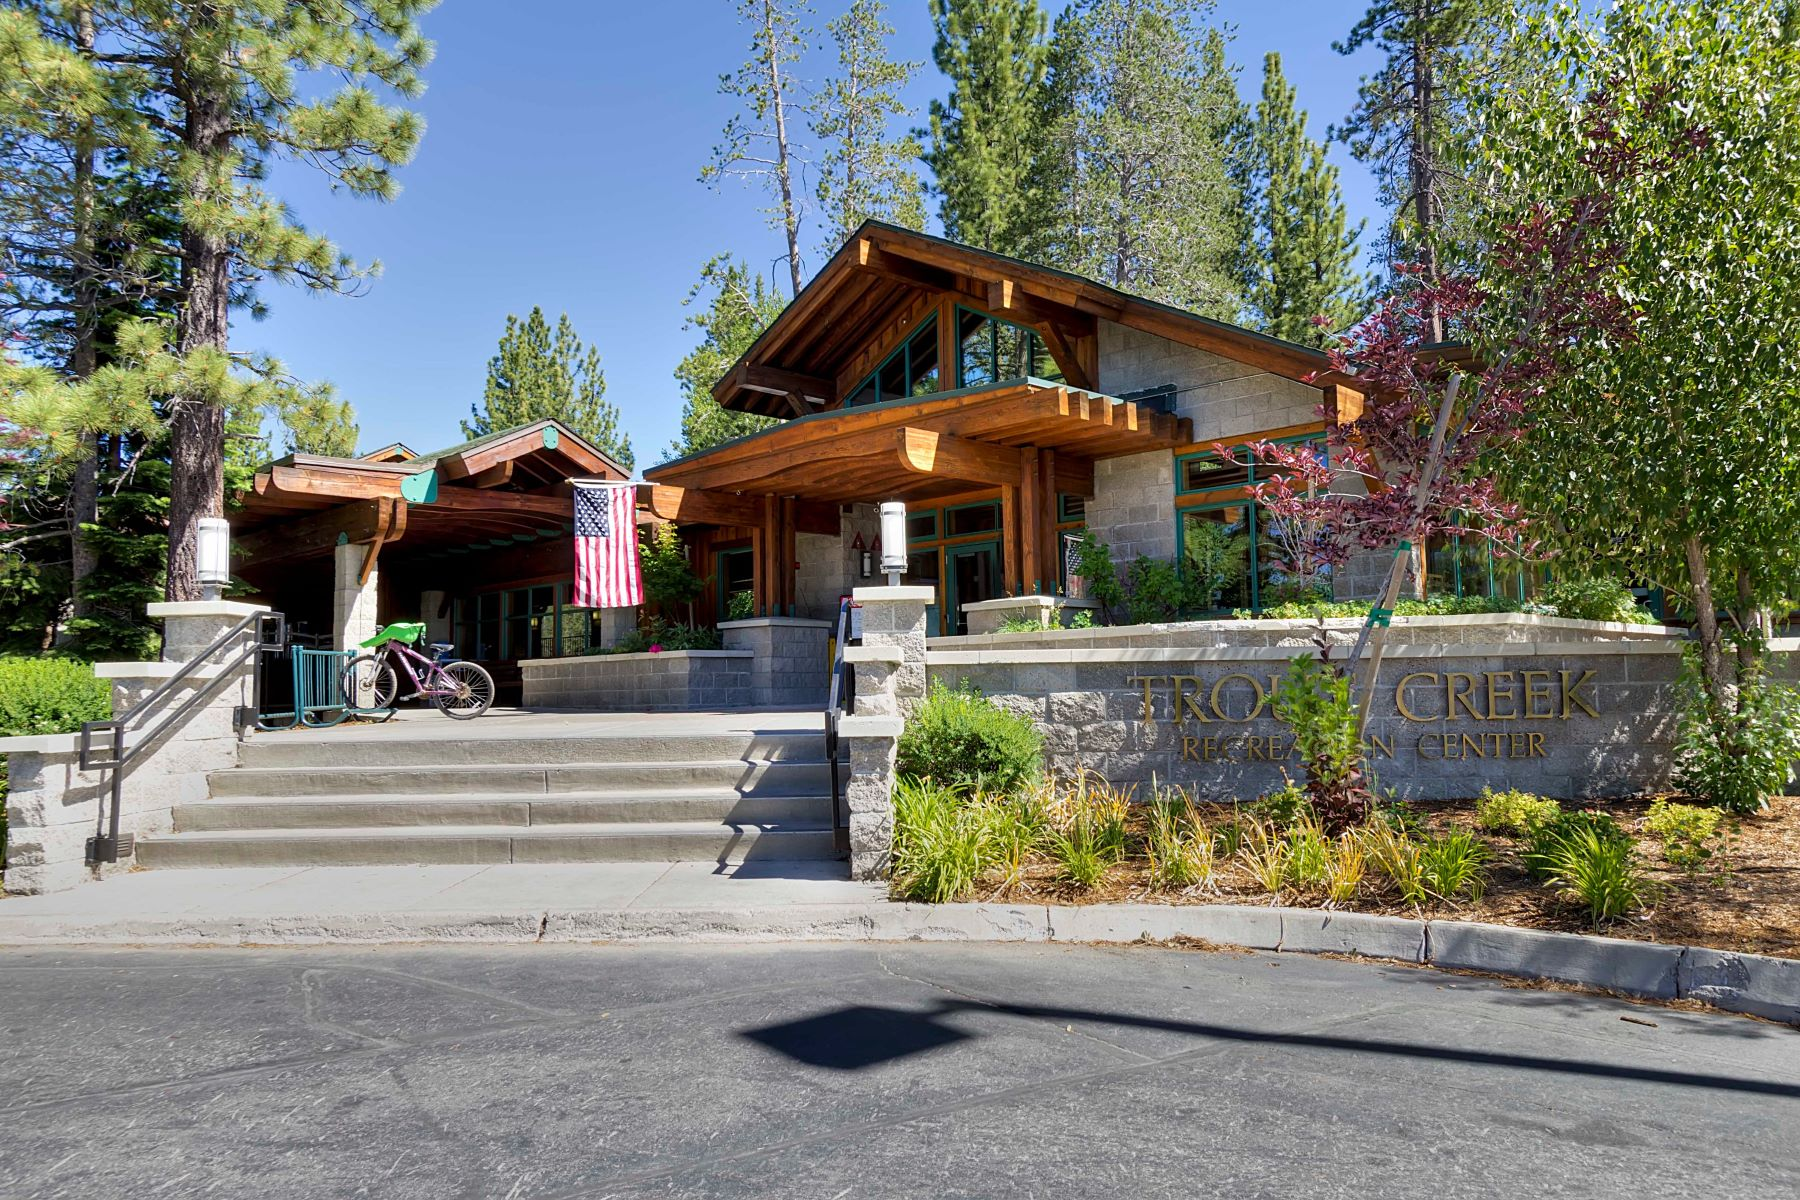 Additional photo for property listing at 12948 Hansel Ave., Truckee, CA 96161 12948 Hansel Avenue 特拉基, 加利福尼亚州 96161 美国